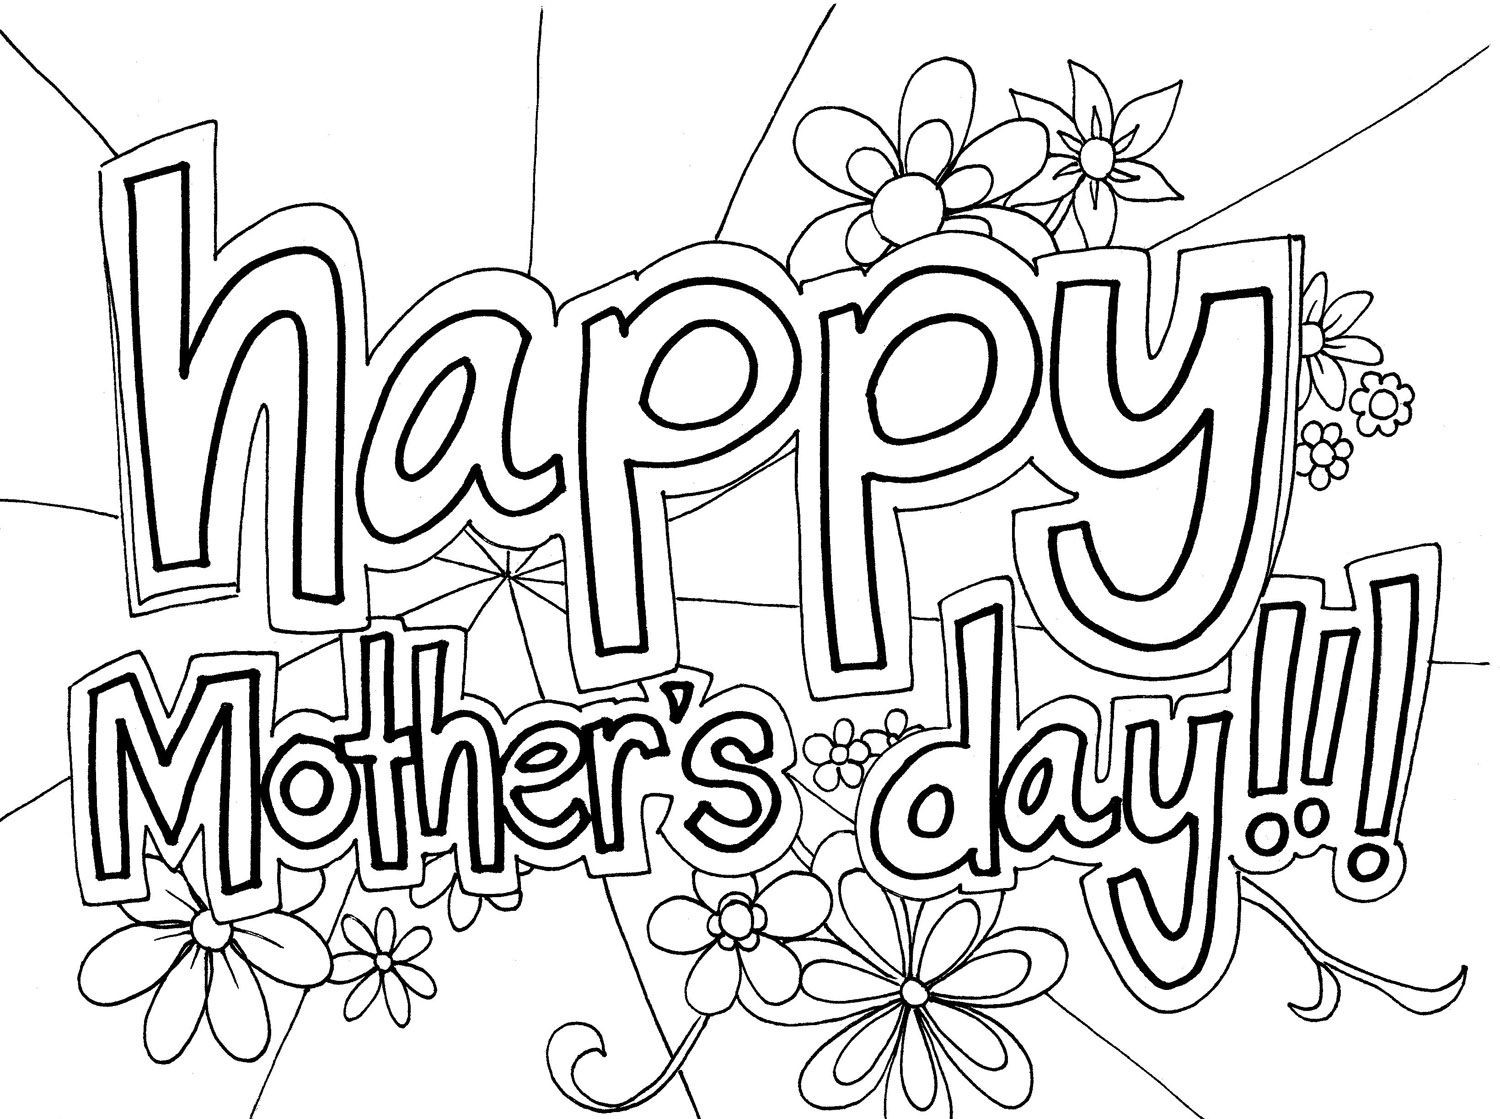 1500x1119 Fathers Day Coloring Pages Christian Luxury Mothers Day Card